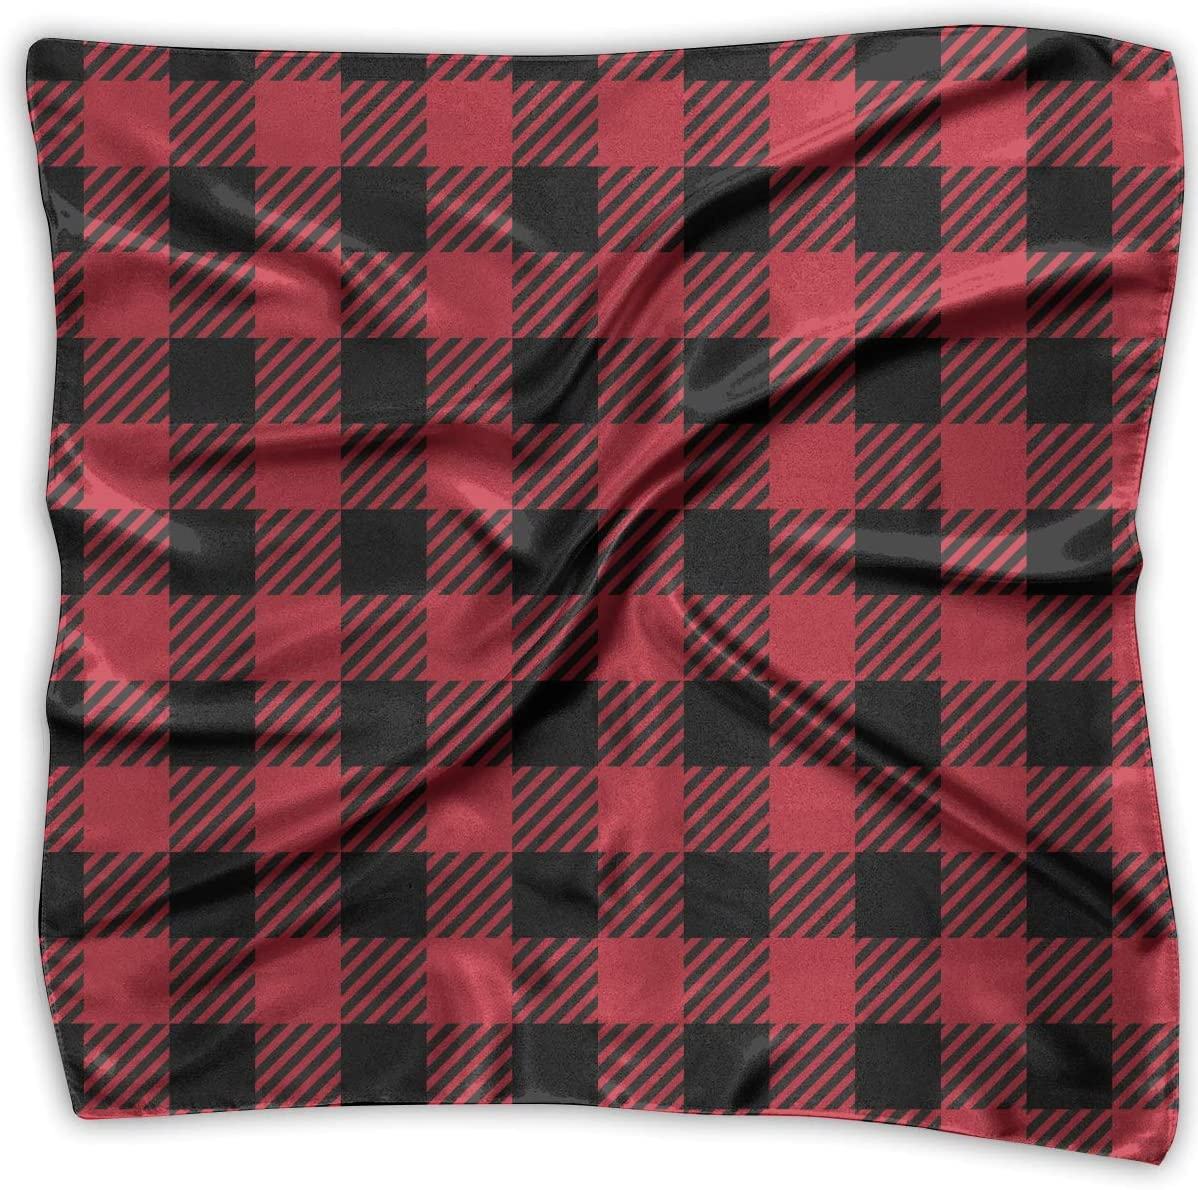 WFIRE Buffalo Red Striped Plaid Square Handkerchiefs Scarf Shawl Bandanas Headscarf Neckerchief Tie Hair Scarf